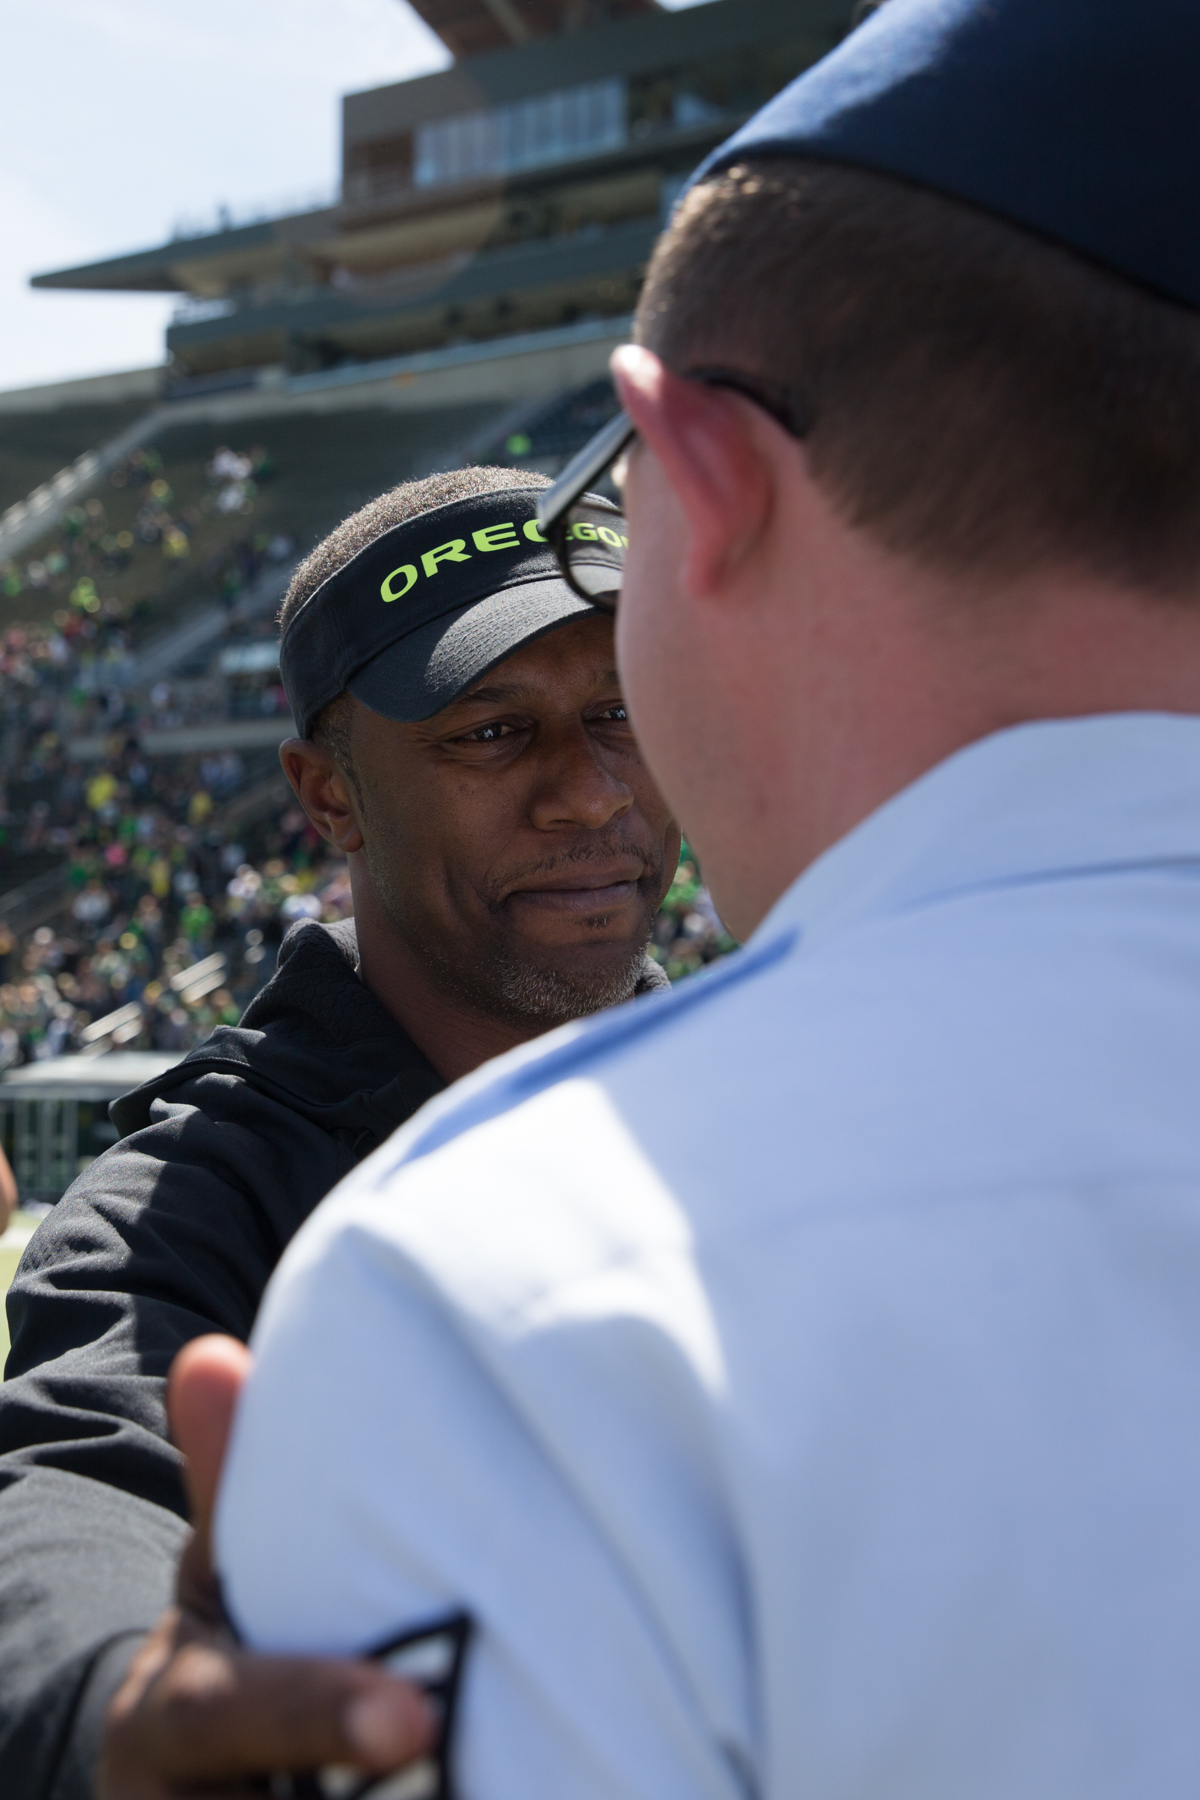 Oregon Ducks Head Coach Willie Taggart shakes hands with Air National Guard Technical Sergeant Andrew Saunders after presenting him with a game jersey. The 2017 Oregon Ducks Spring Game provided fans their first look at the team under new Head Coach Willie Taggart's direction.  Team Free defeated Team Brave 34-11 on a sunny day at Autzen Stadium in Eugene, Oregon.  Photo by Austin Hicks, Oregon News Lab